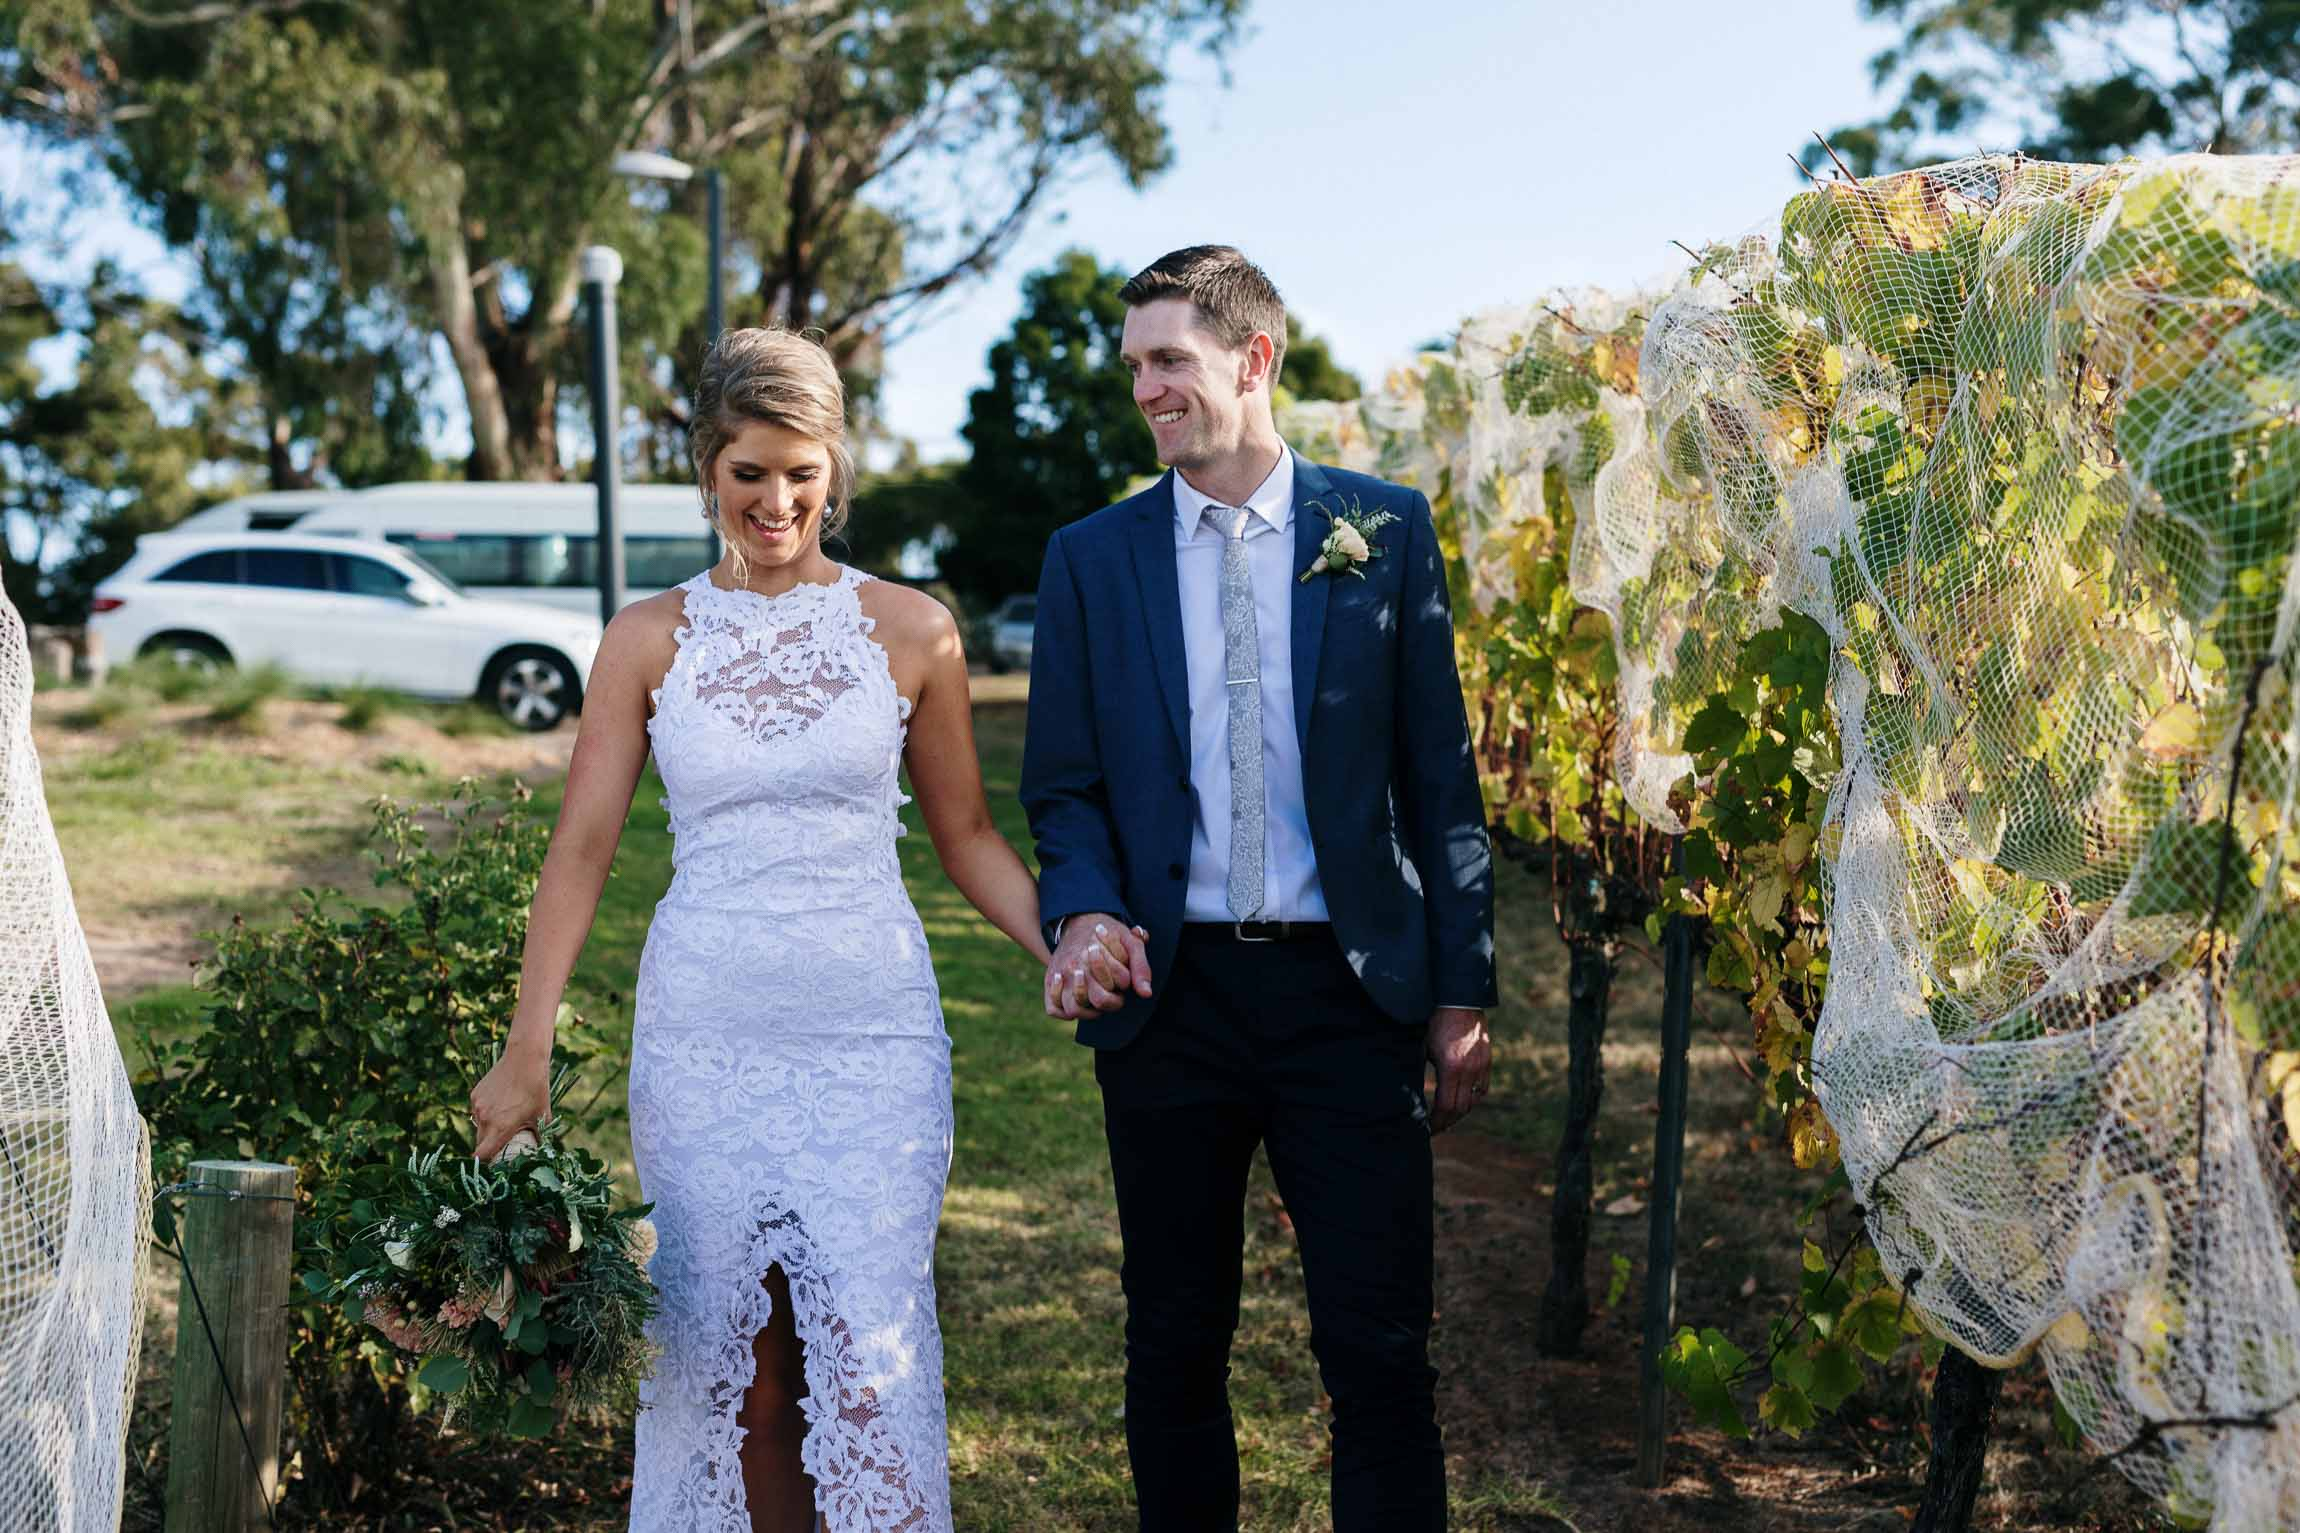 lachlan-scallion-melbourne-victoria-austrlia-mornington-peninsula-candid-relaxed-natural-chilled-wedding-photographyglasshaus-richmond-522.jpg